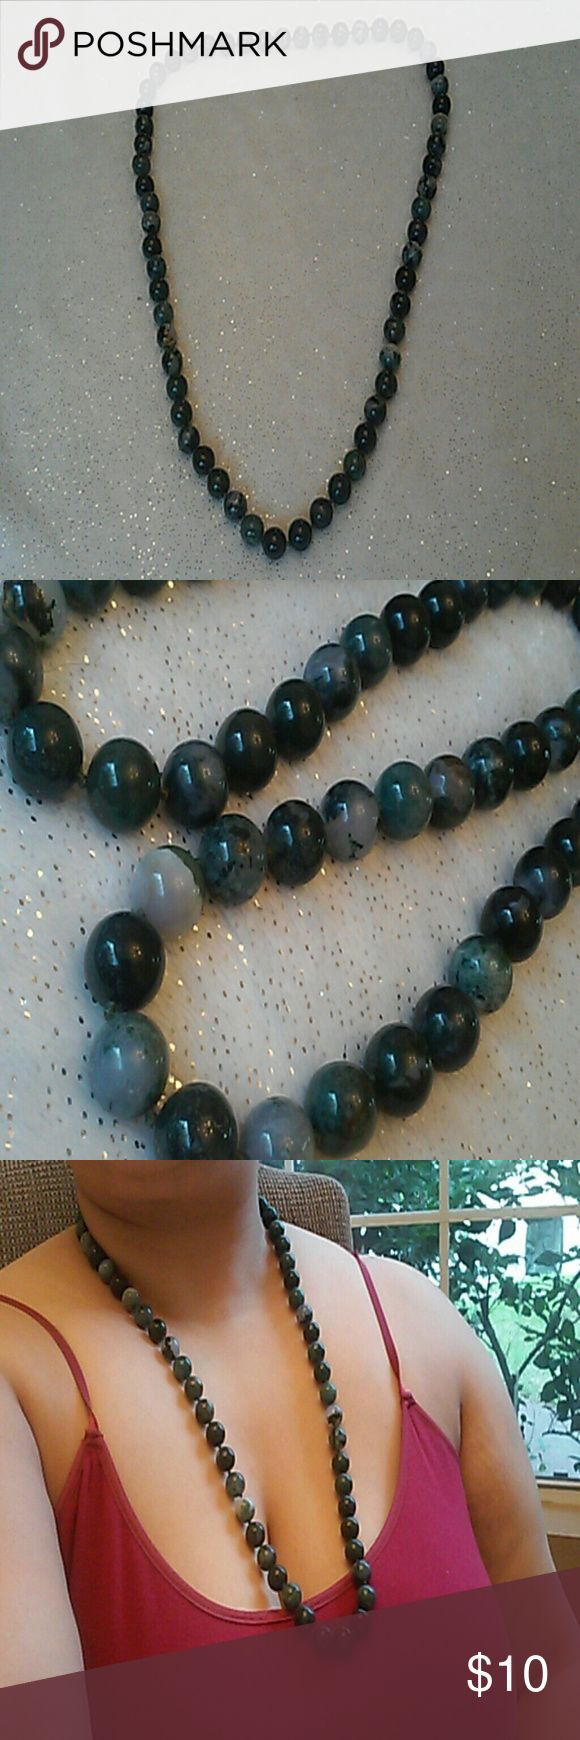 Charming charlie jade beaded necklace Medium length, jade marbled beads. Charming Charlie Jewelry Necklaces